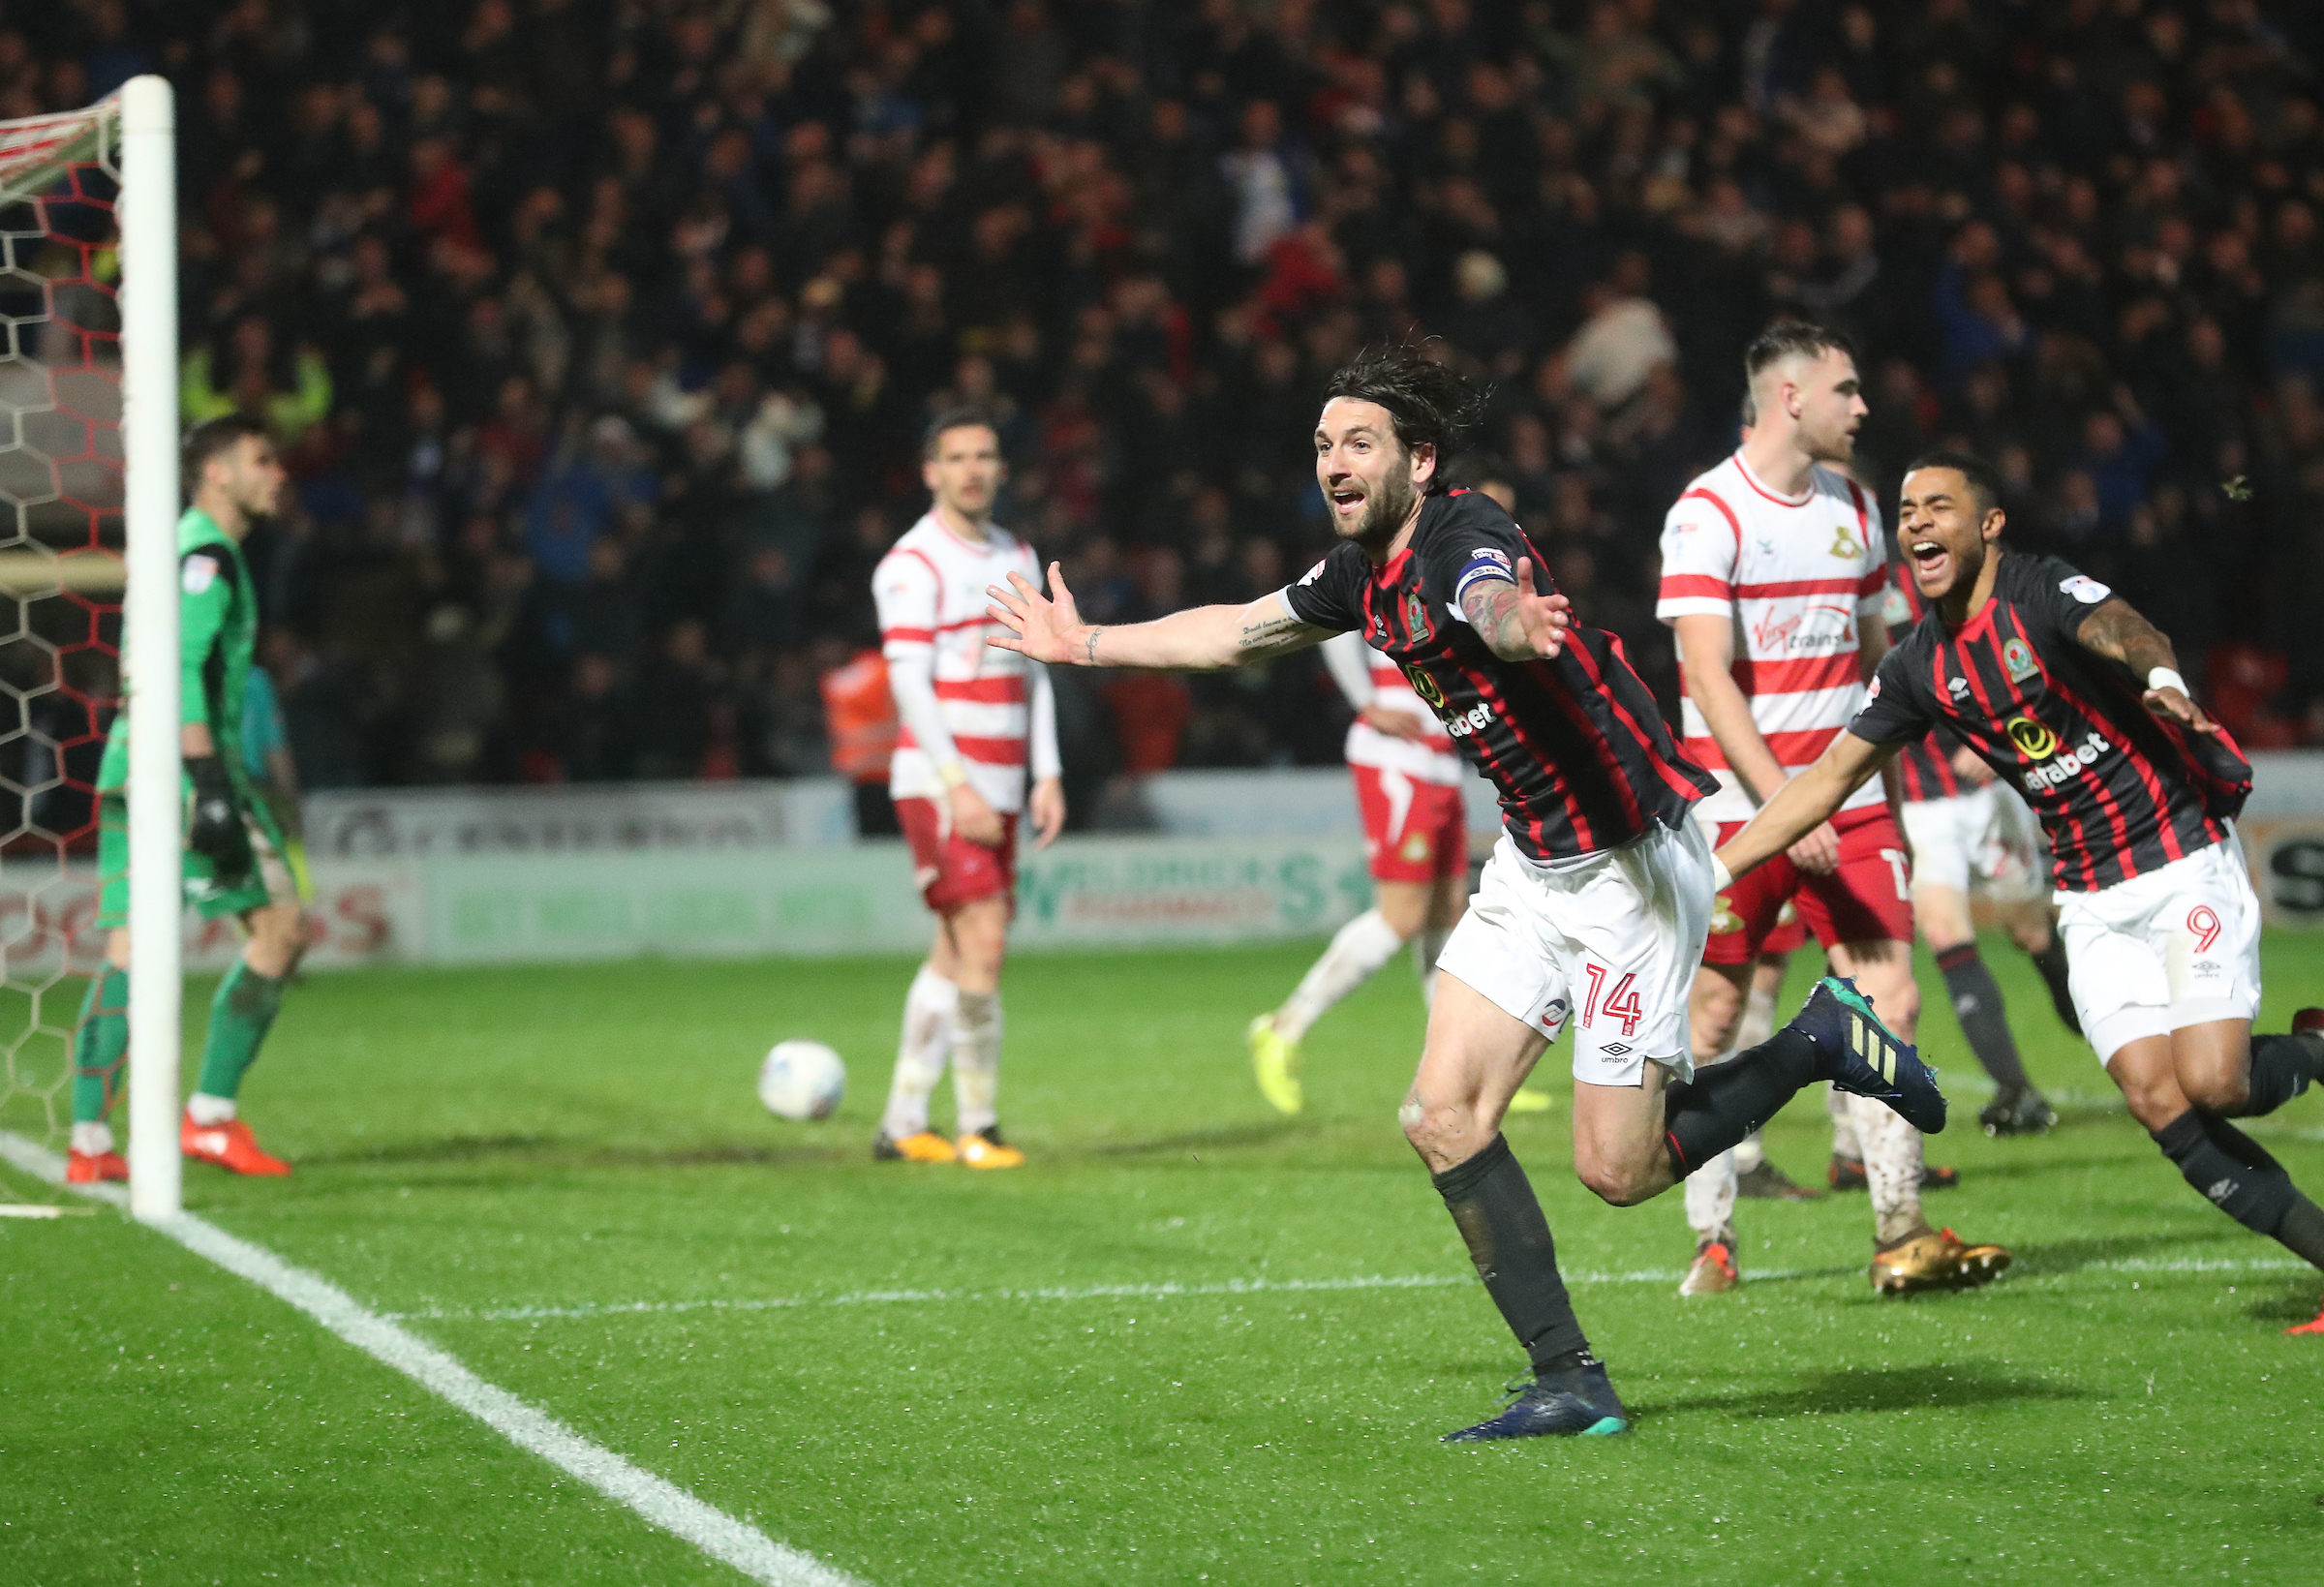 Charlie Mulgrew headed in Rovers' winner at Doncaster to seal promotion